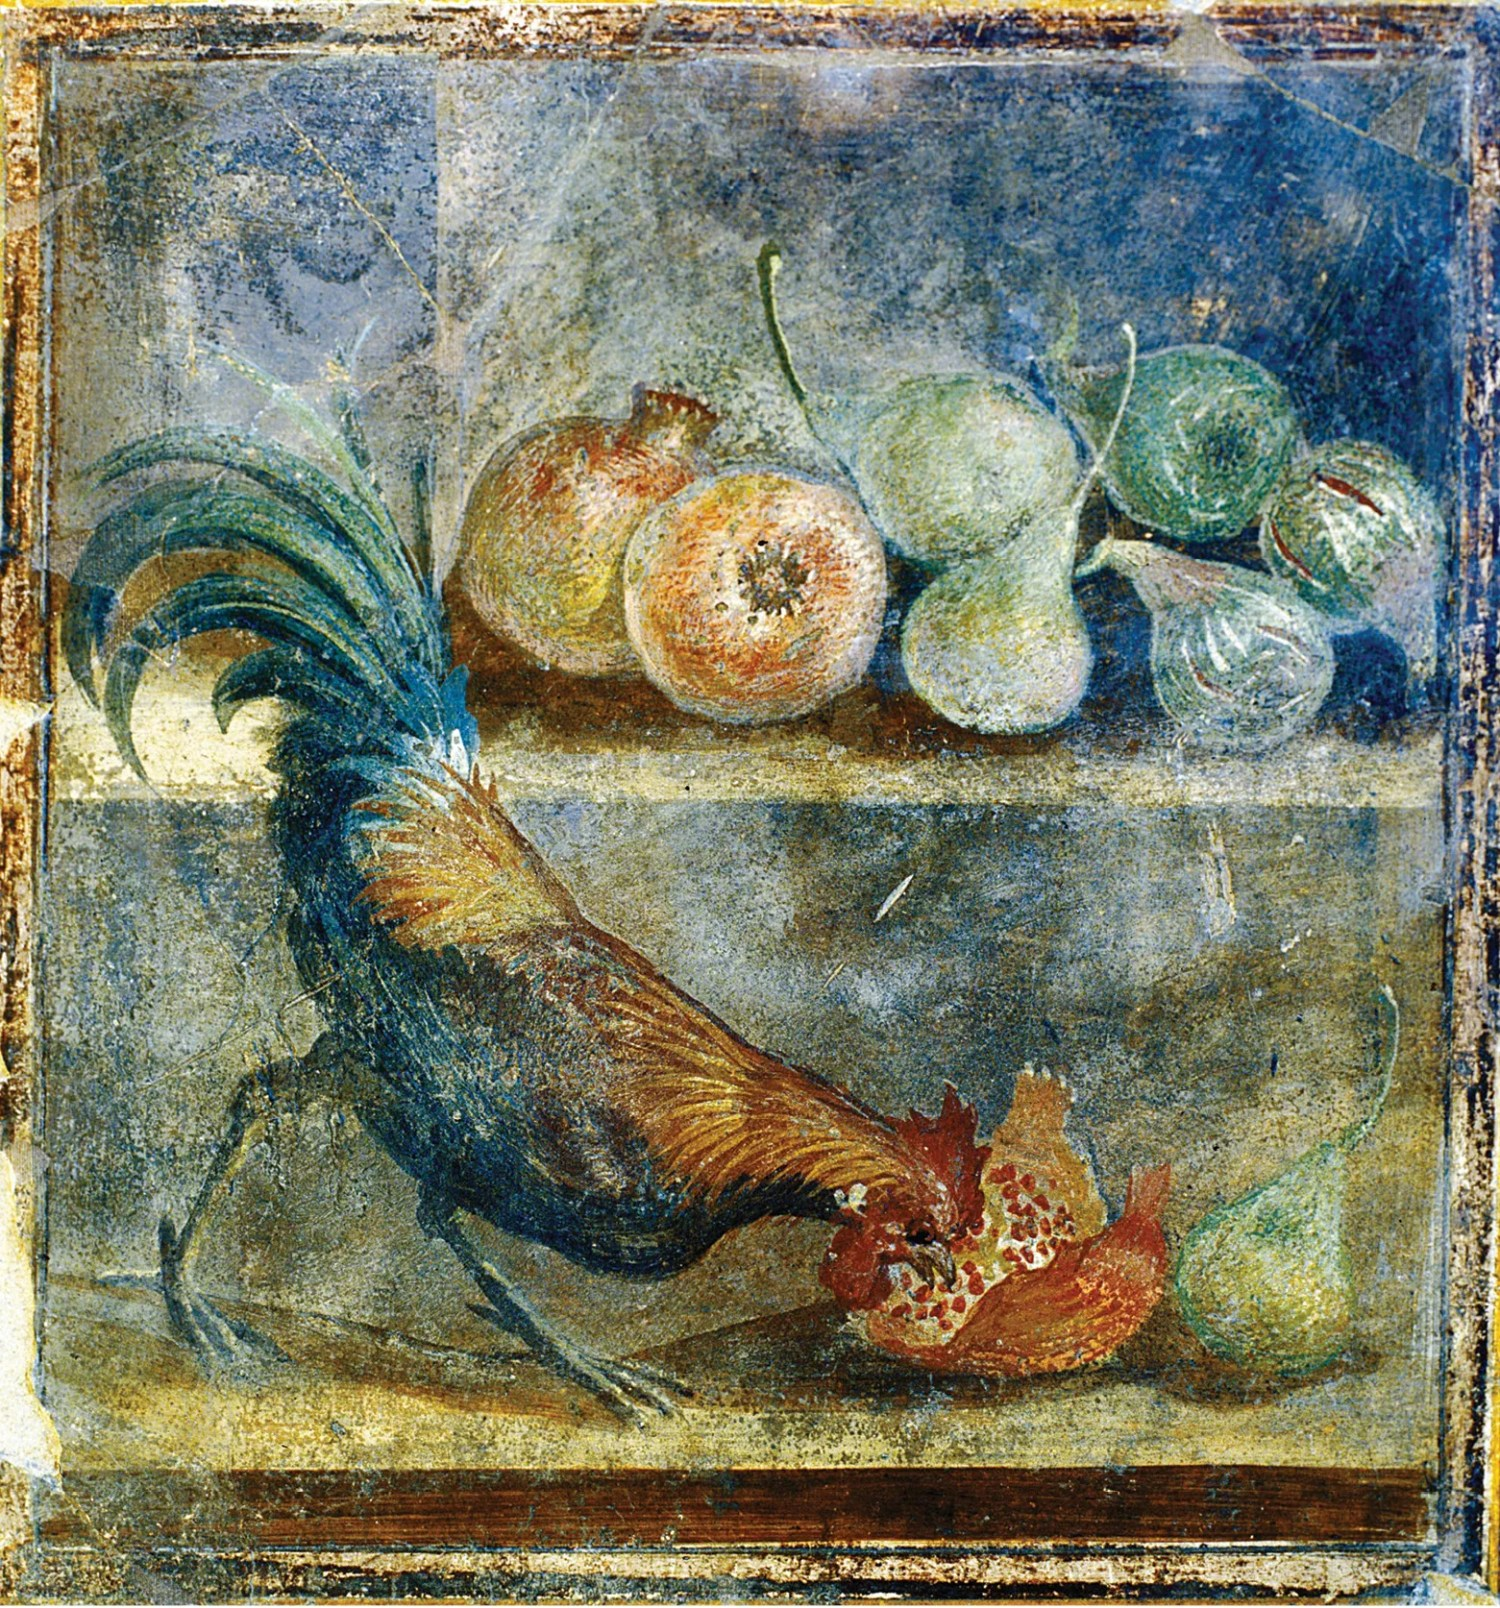 above Homes in Pompeii were decorated with frescoes celebrating food and feasting. This AD 45-79 still-life wall panel from the House of the Chaste Lovers depicts a cockerel pecking at pomegranates, figs, and pears on a shelf.